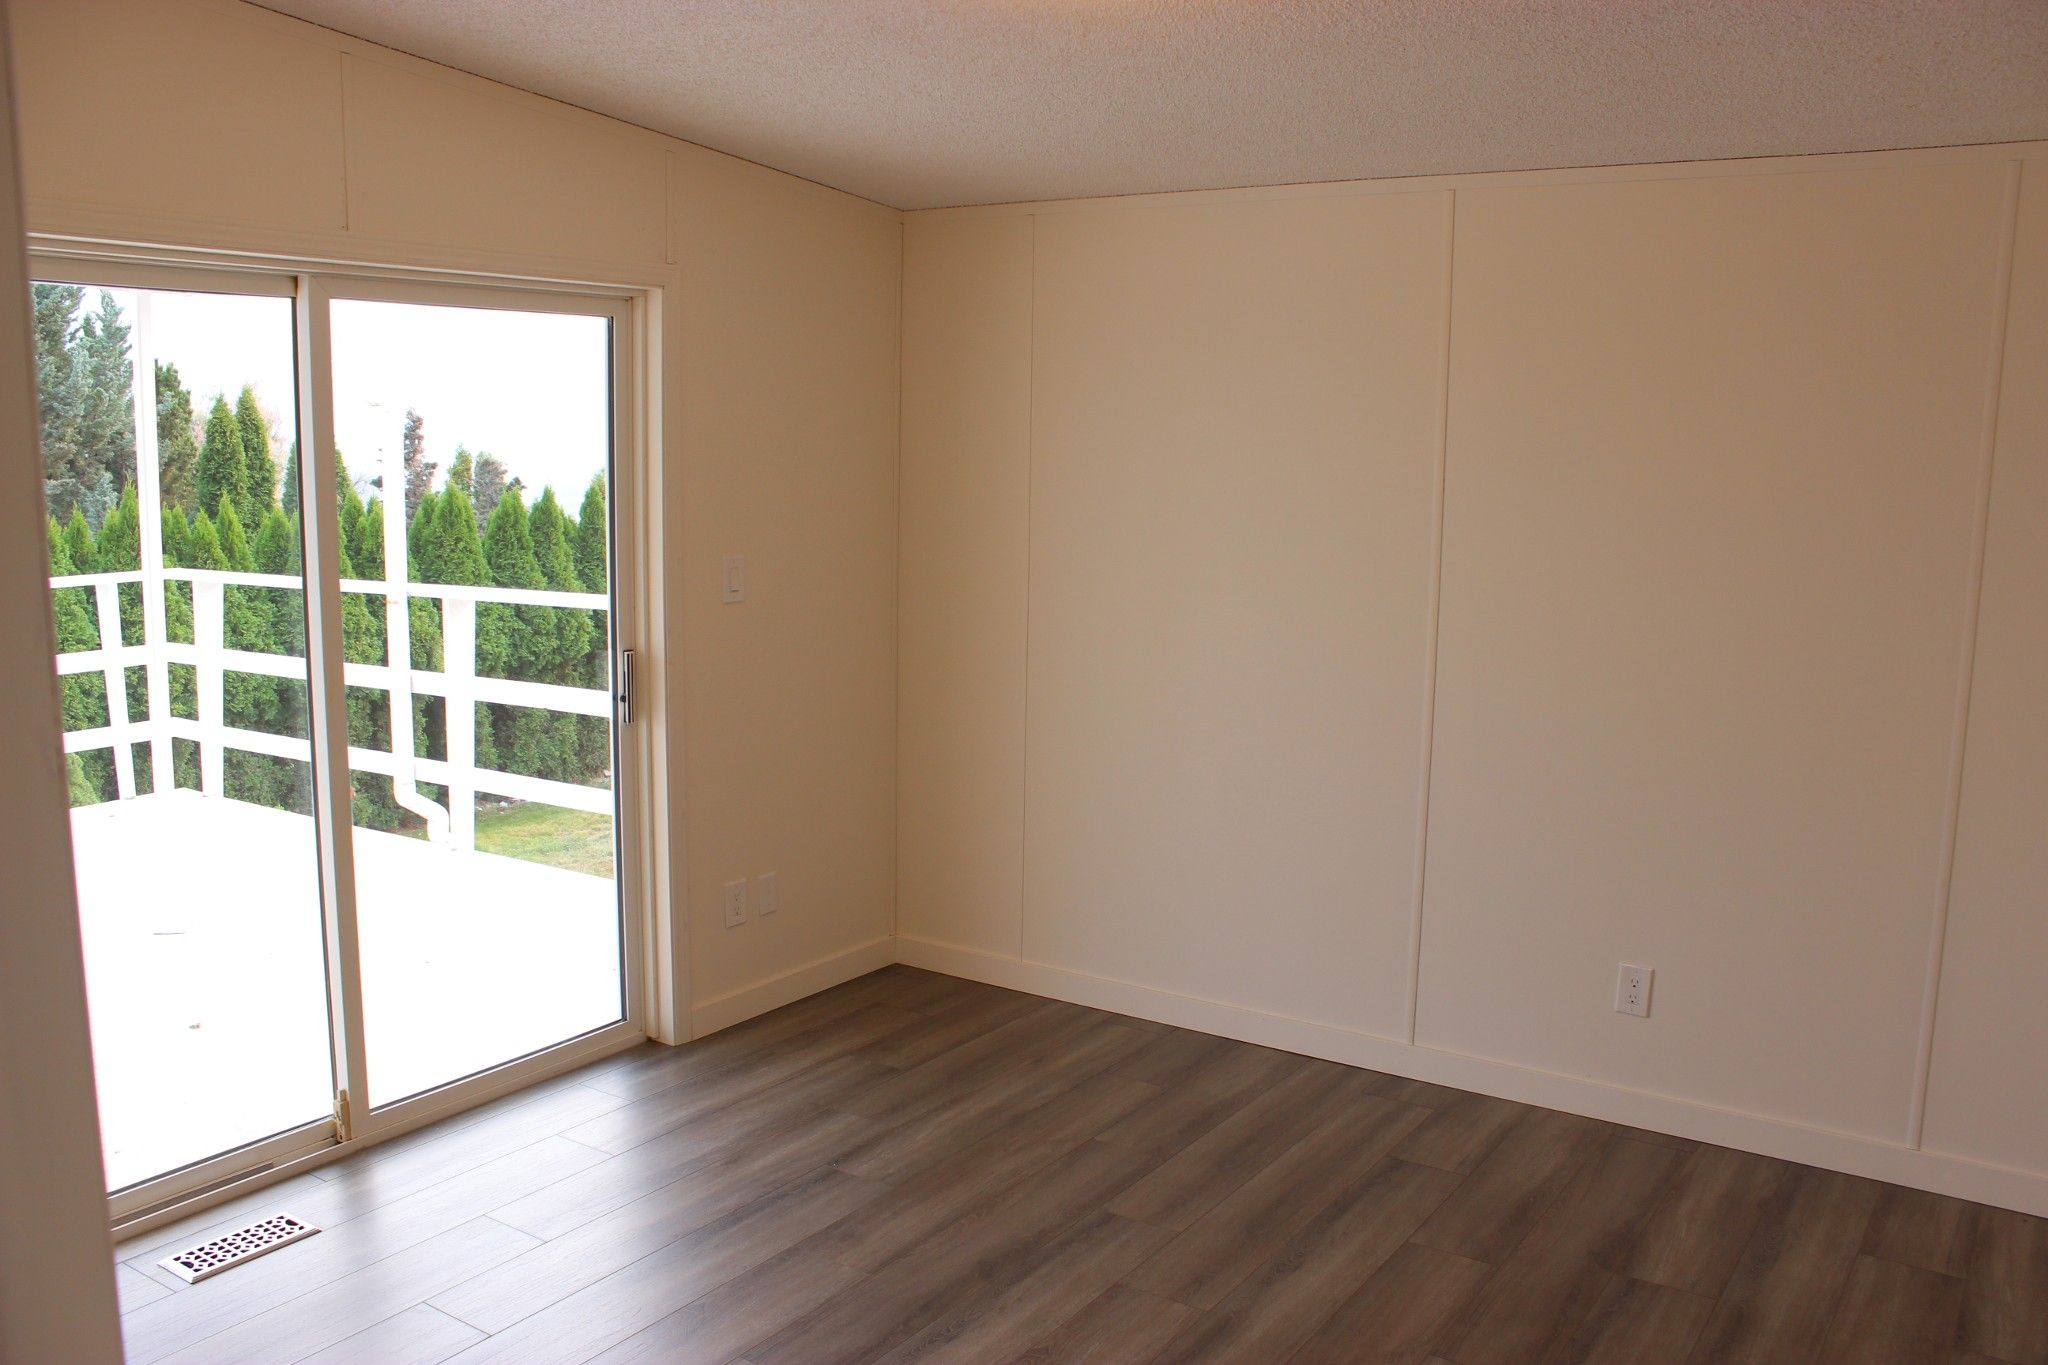 Photo 10: Photos: 22 3099 E Shuswap Road in Kamloops: South Thompson Valley Manufactured Home for sale : MLS®# 147827